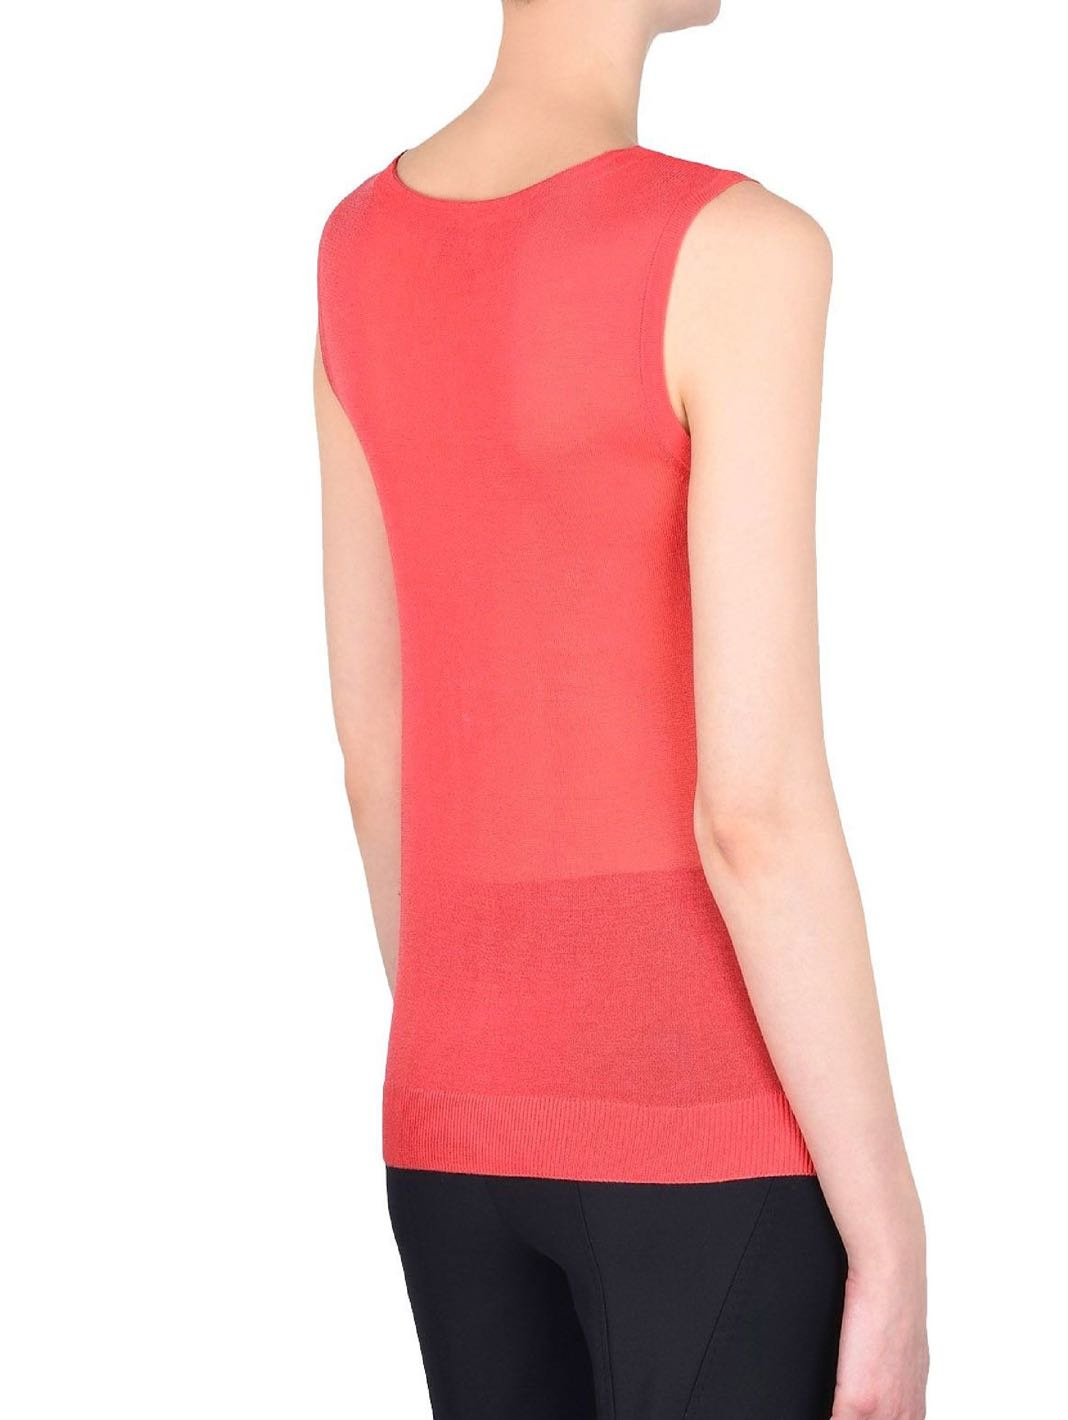 Ribbed Knit Sleeveless Top - The Bobby Boga